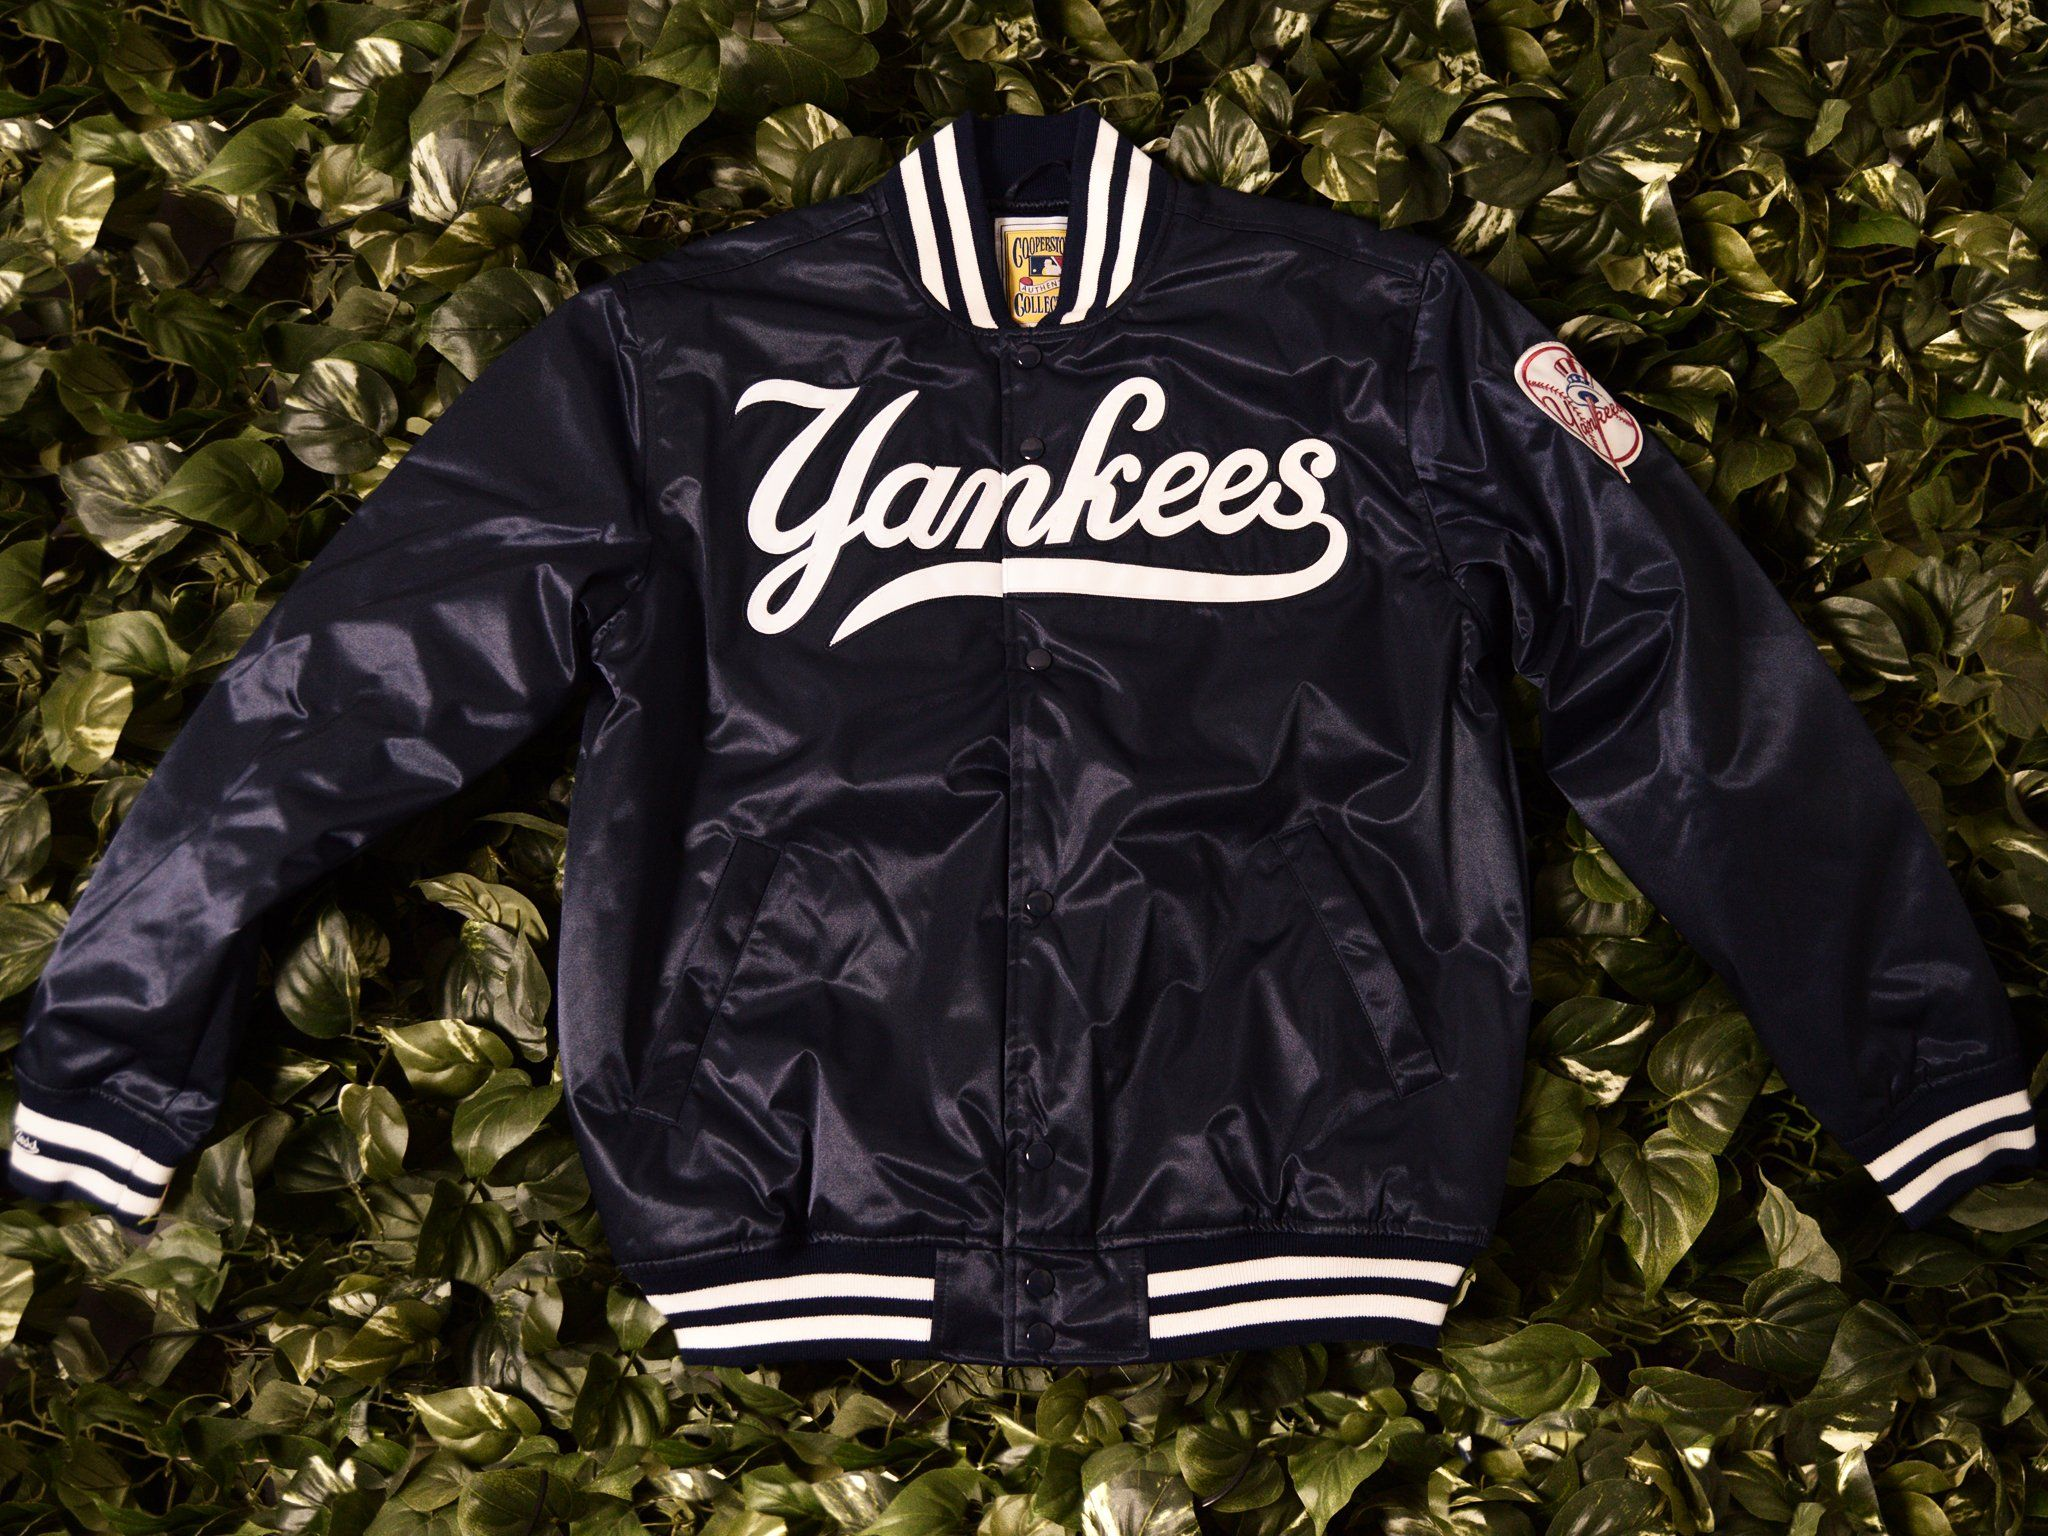 buy online 69e73 ce1d4 Mitchell & Ness Authentic '1999 Yankees' Satin Jacket [5542 ...